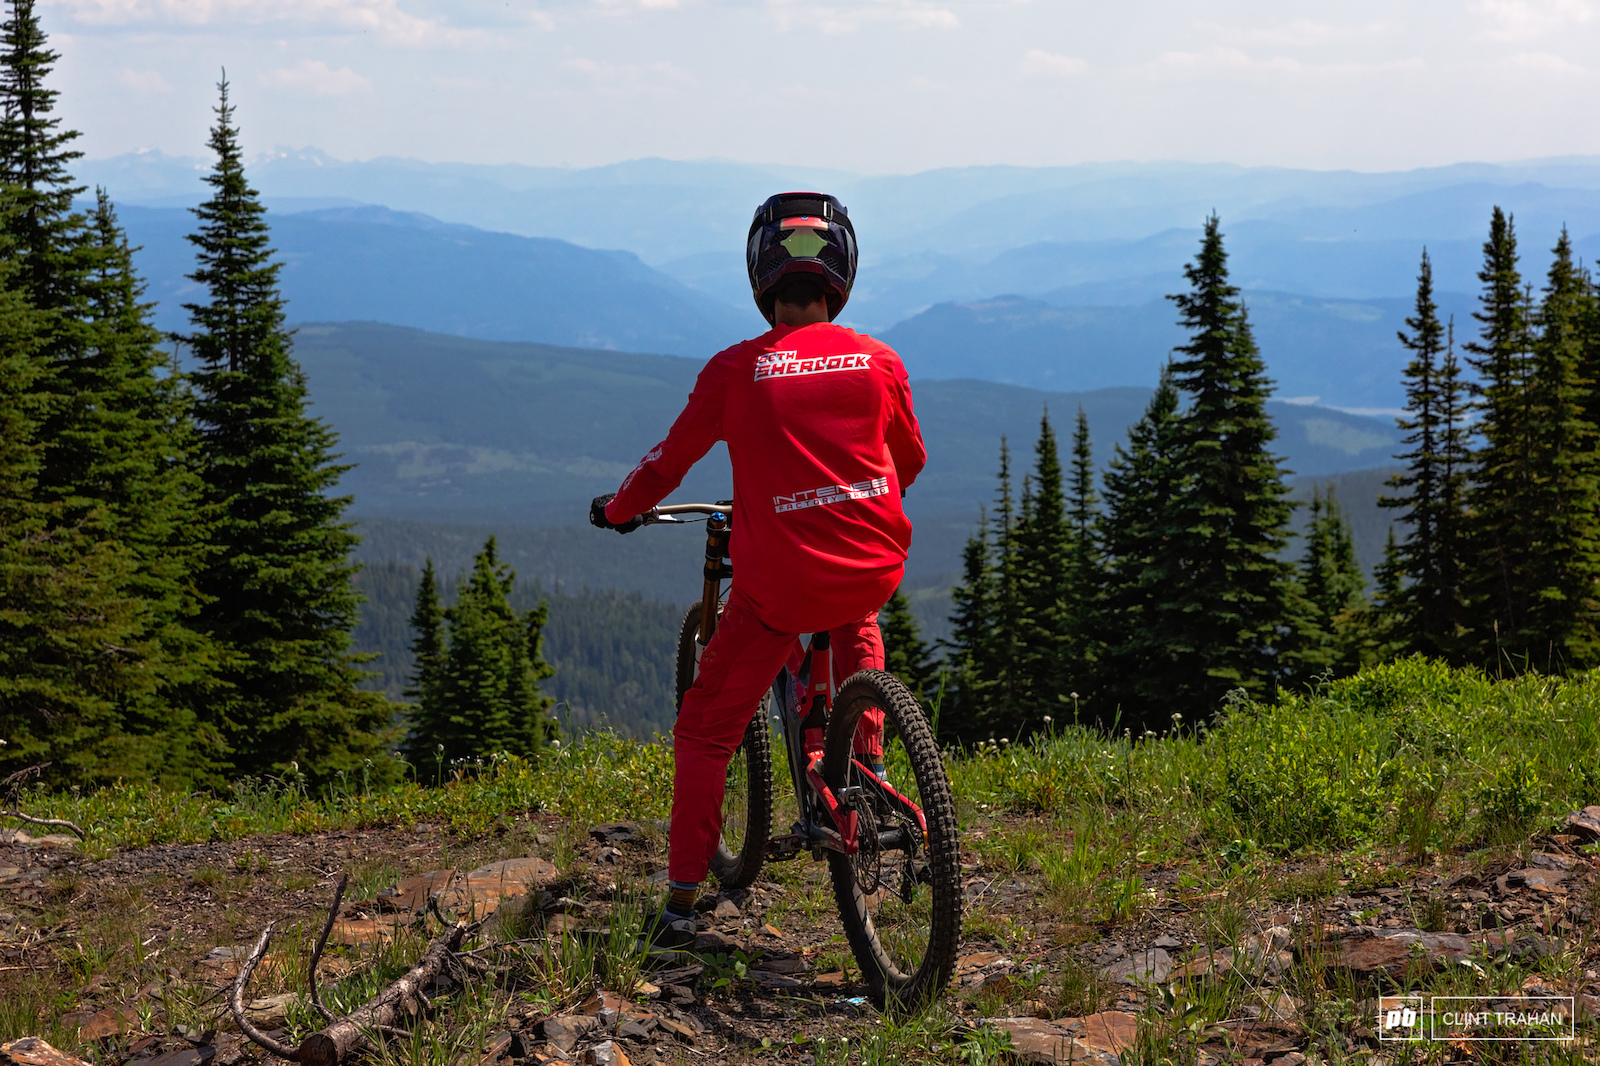 Silver Star is a beautiful place to ride. Be like Seth ride here.